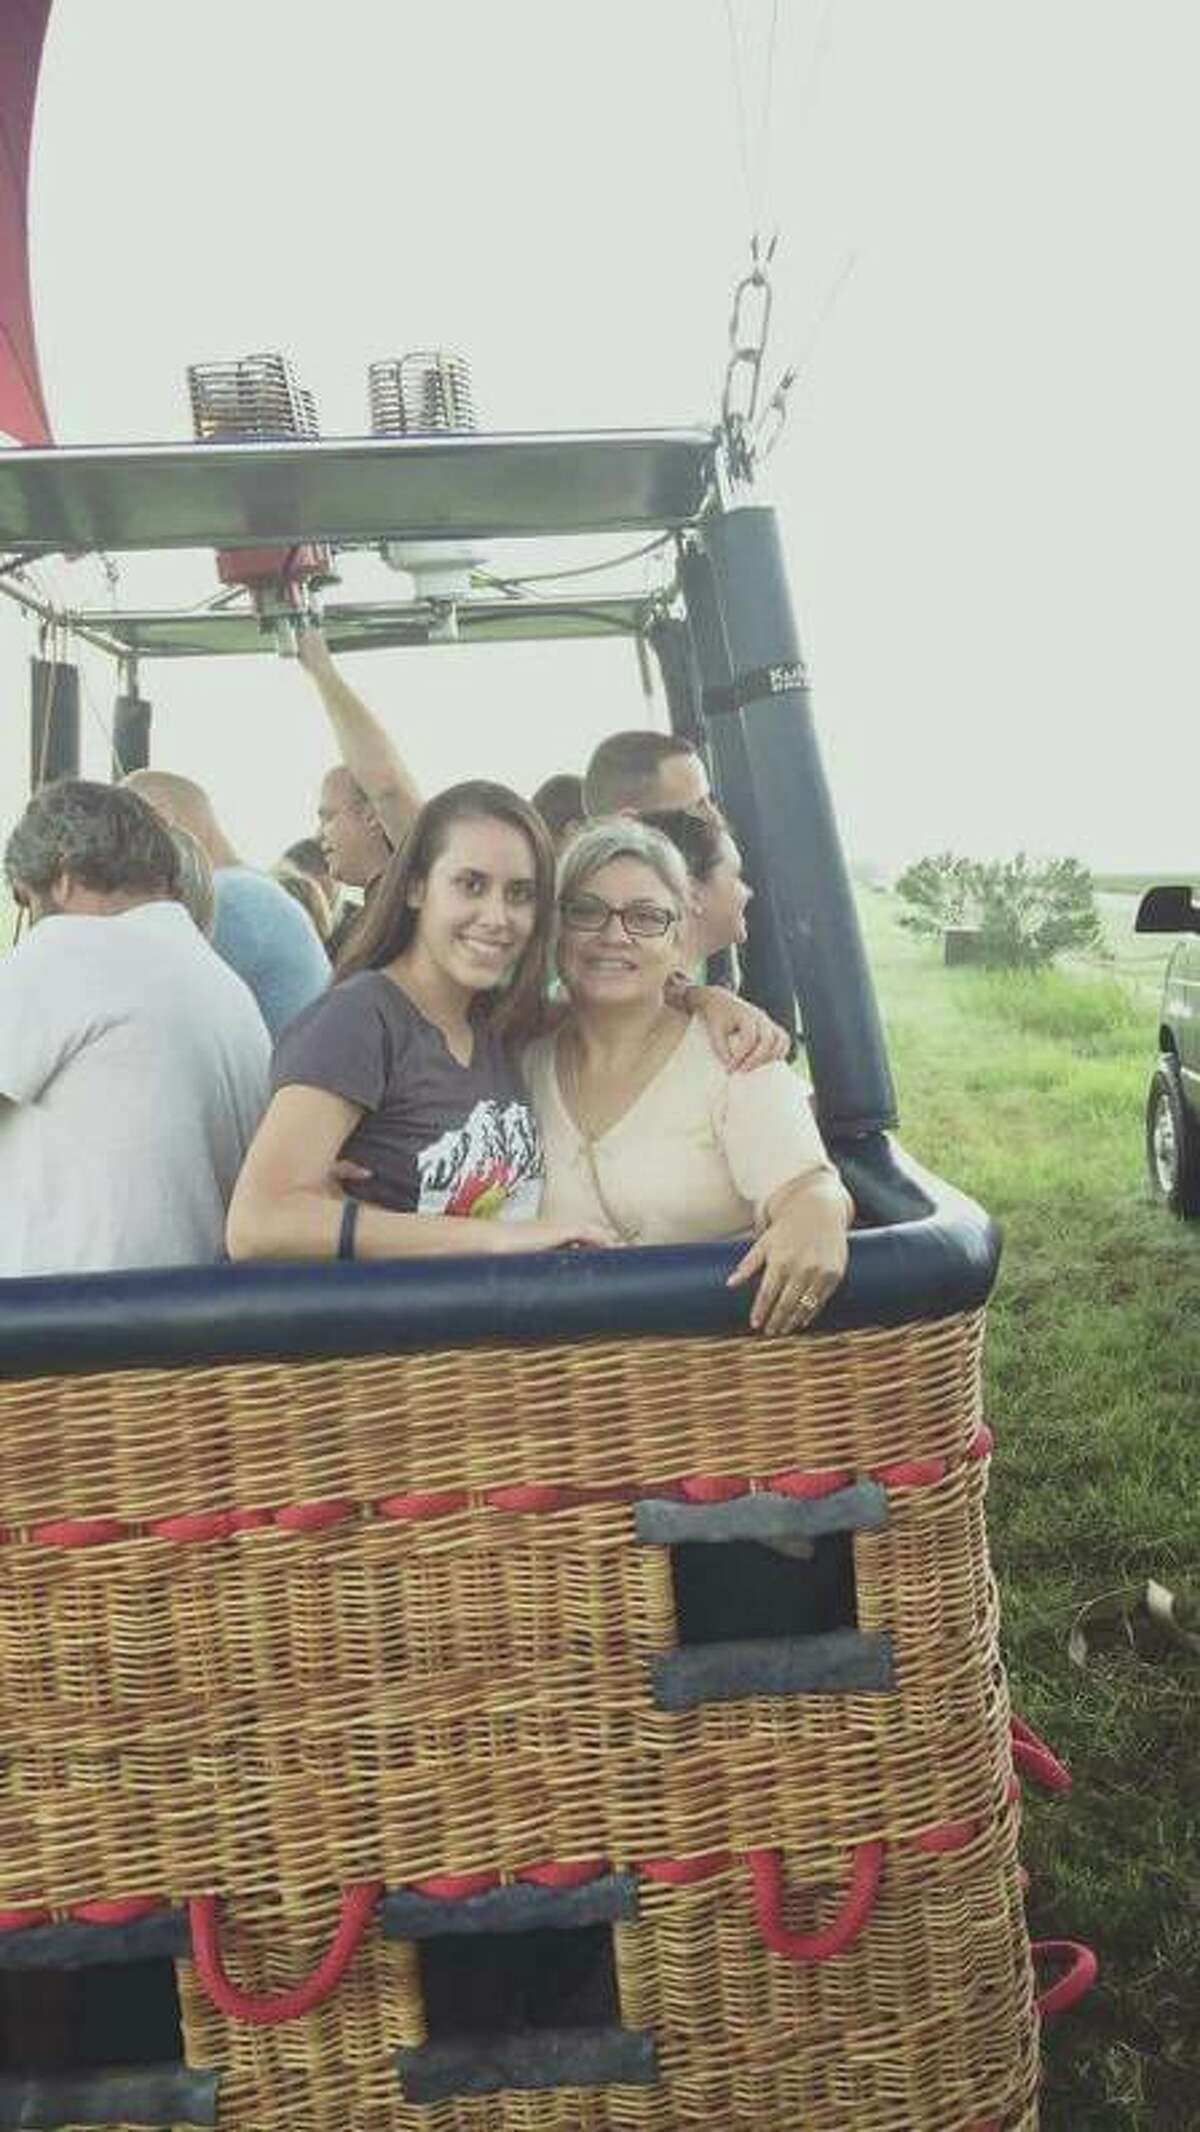 Lorilee, left, and Paige Brabson, right, were among the 16 people killed July 30 in a hot air balloon crash in Lockhart. The mother-daughter pair lived and worked in San Antonio. Paige Brabson leaves behind an 11-month-old baby girl.